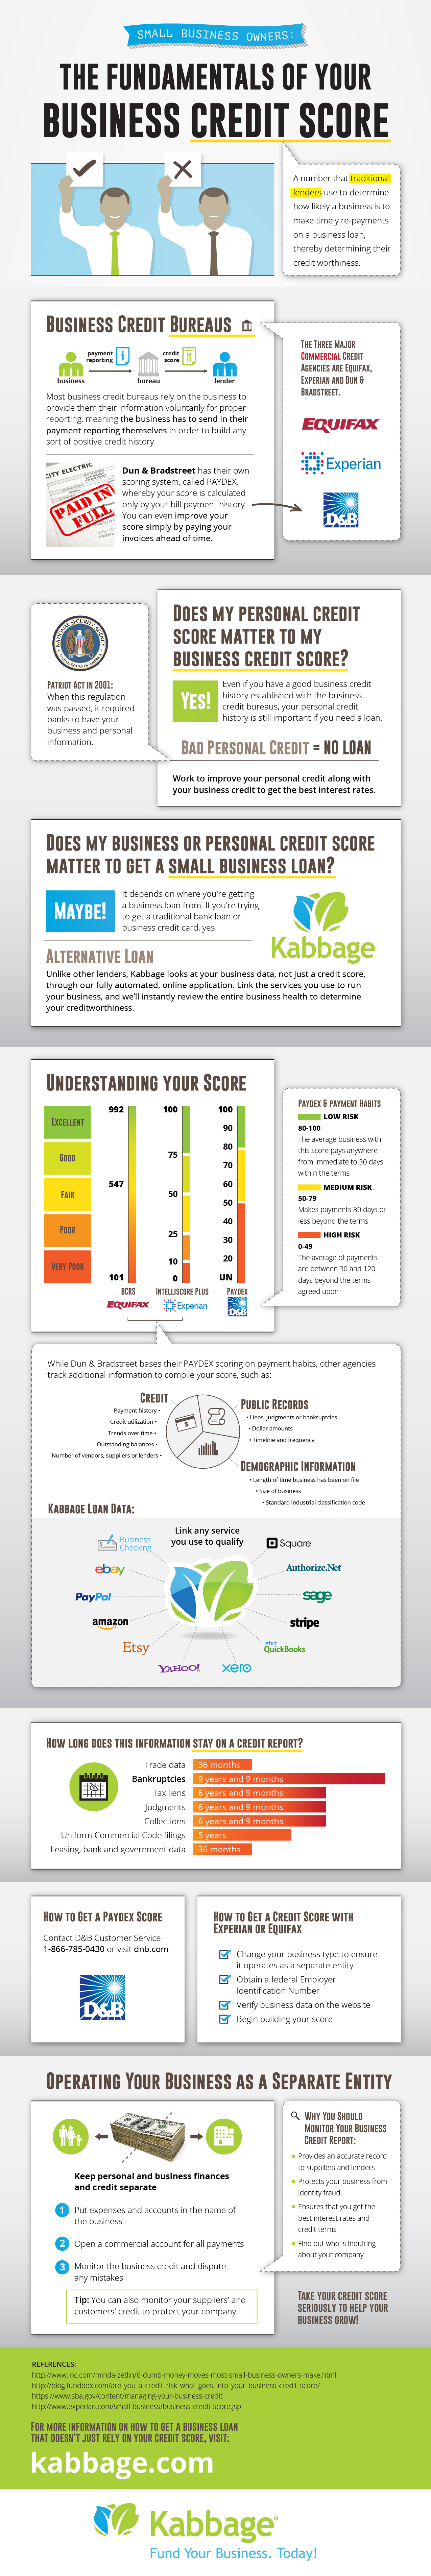 The fundamentals of your business credit score infographic bizcreditscoreinfographicfinal reheart Image collections